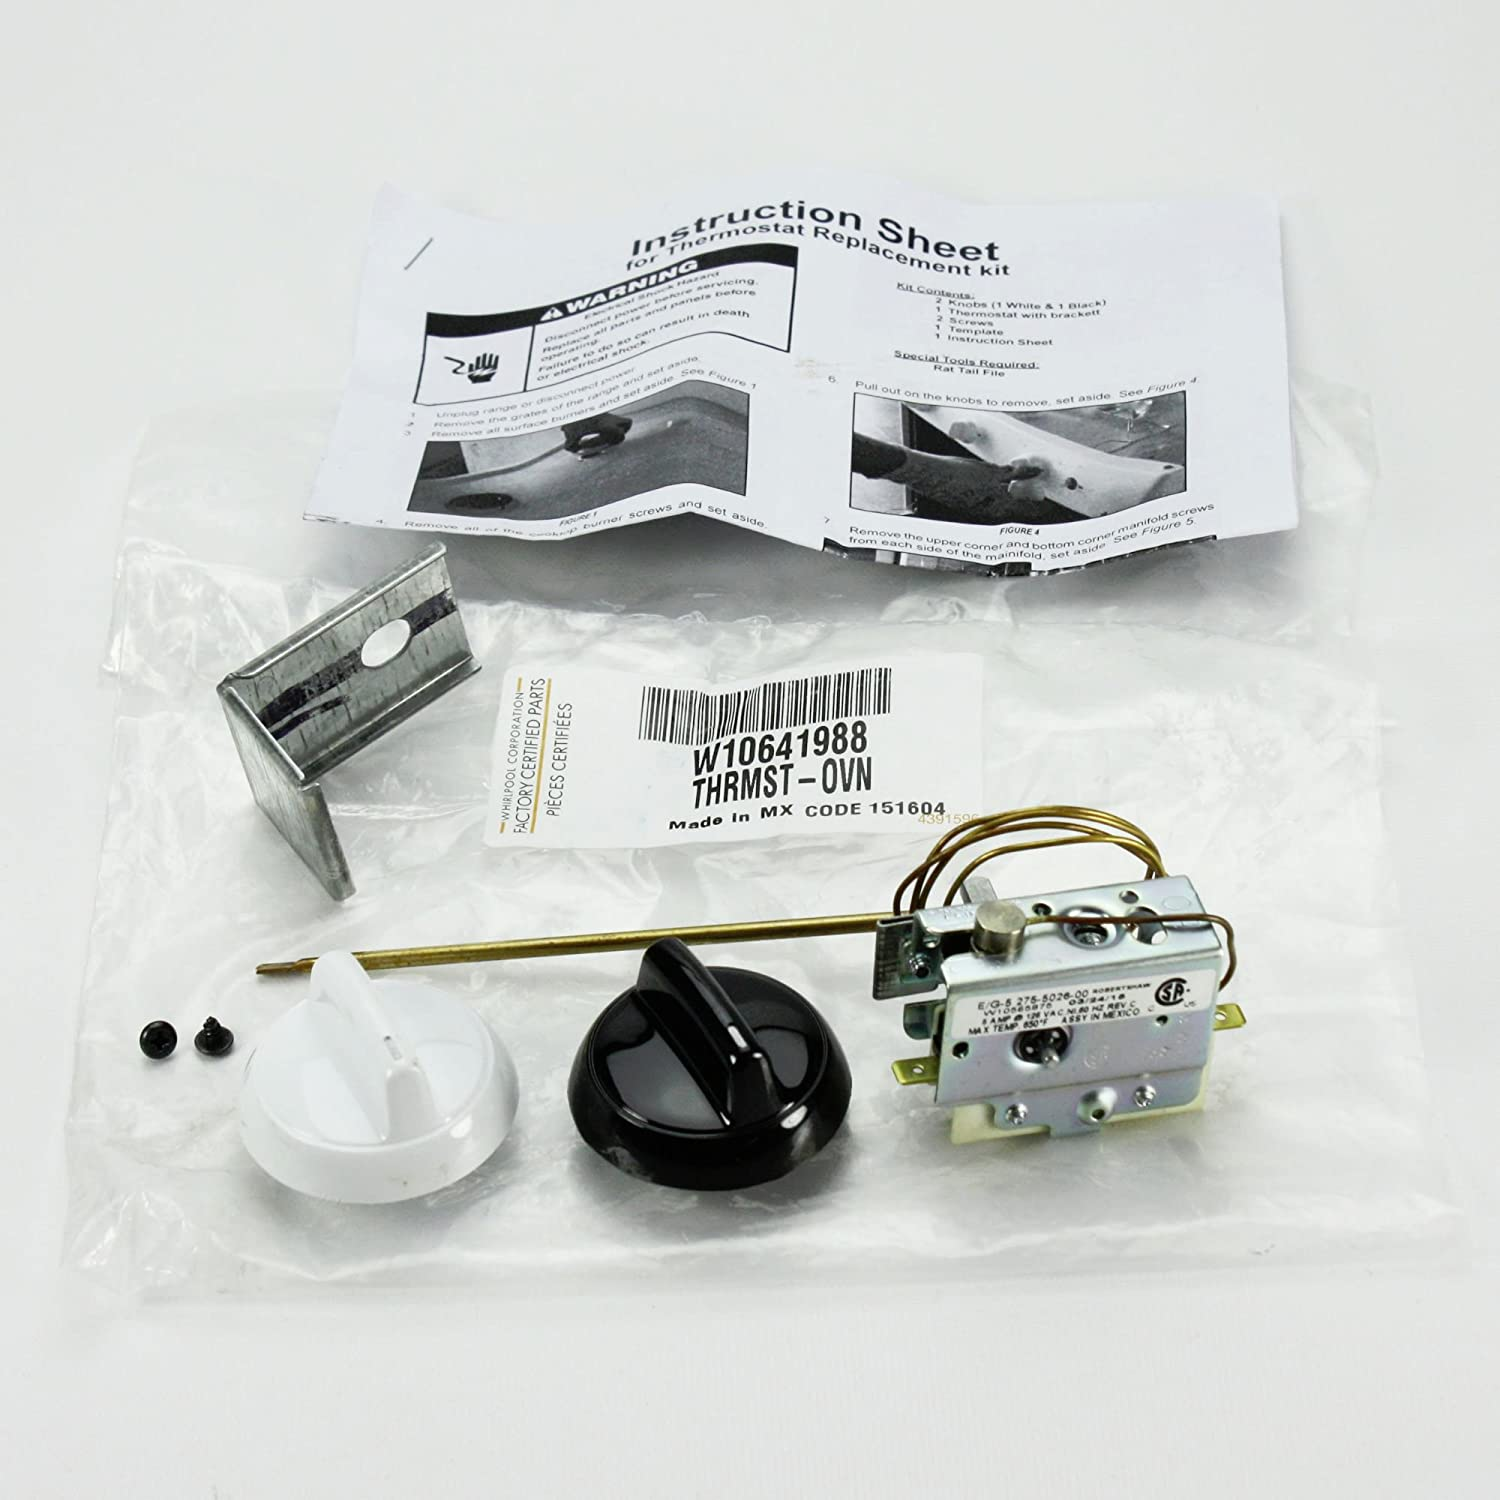 Whirlpool W10641988 Range Oven Control Thermostat Genuine Original Equipment Manufacturer (OEM) Part